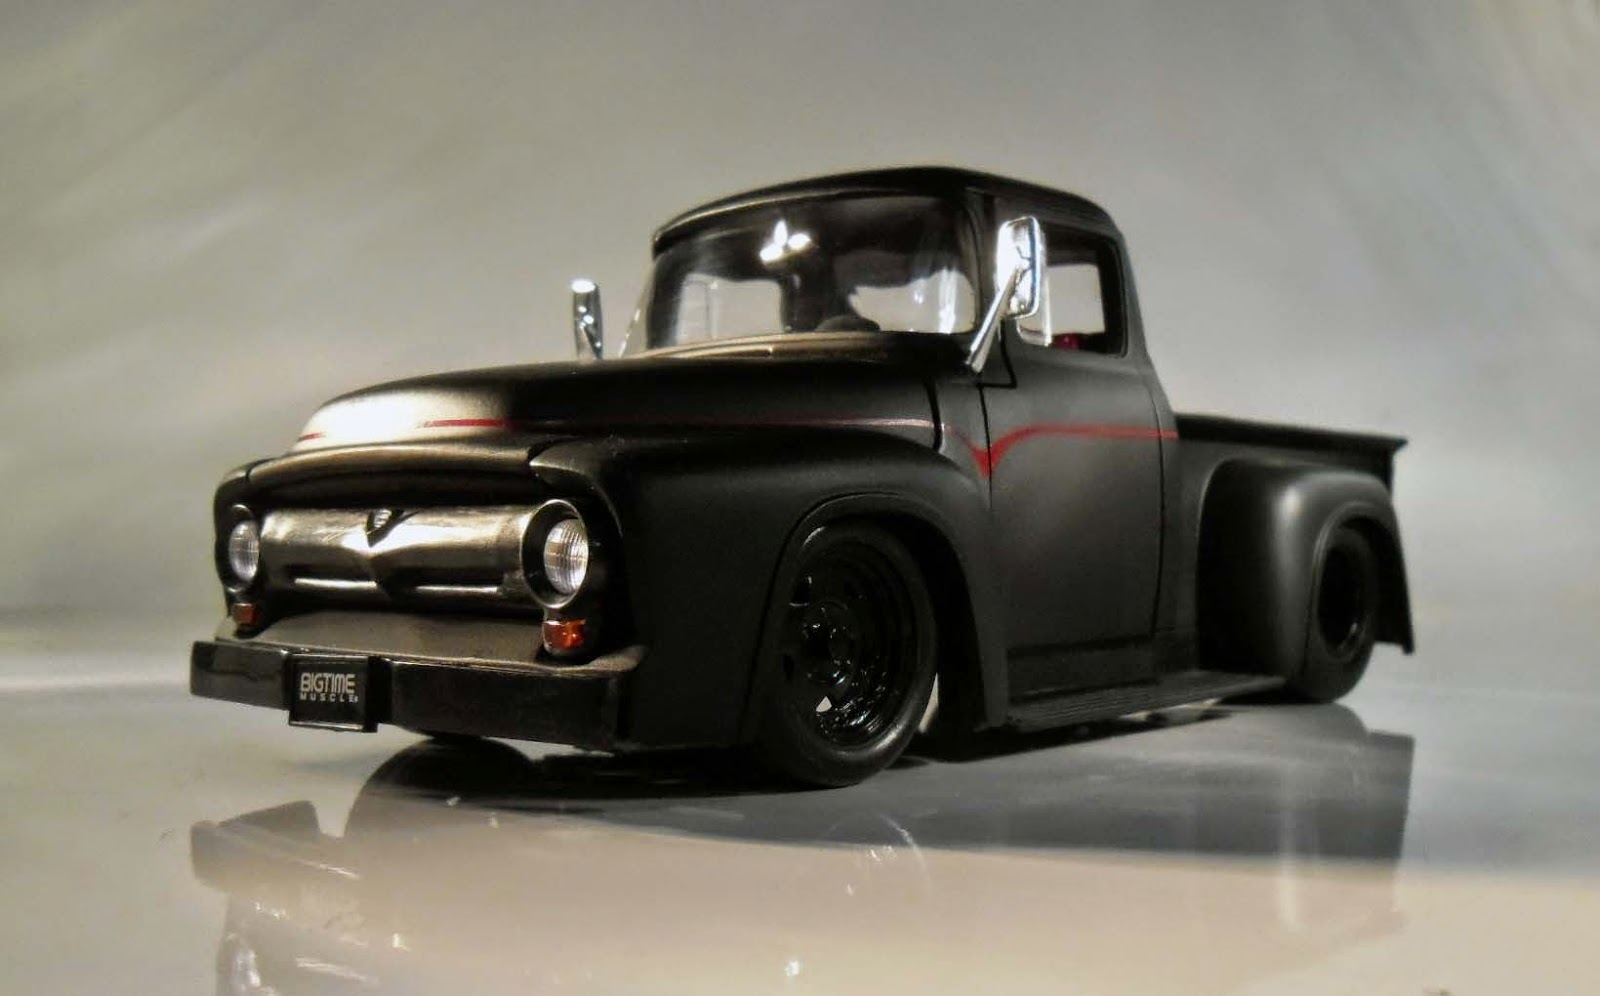 Auto Galeria 1 18 Eddie Ford F 100 1956 Quot Bigtime Muscle Quot